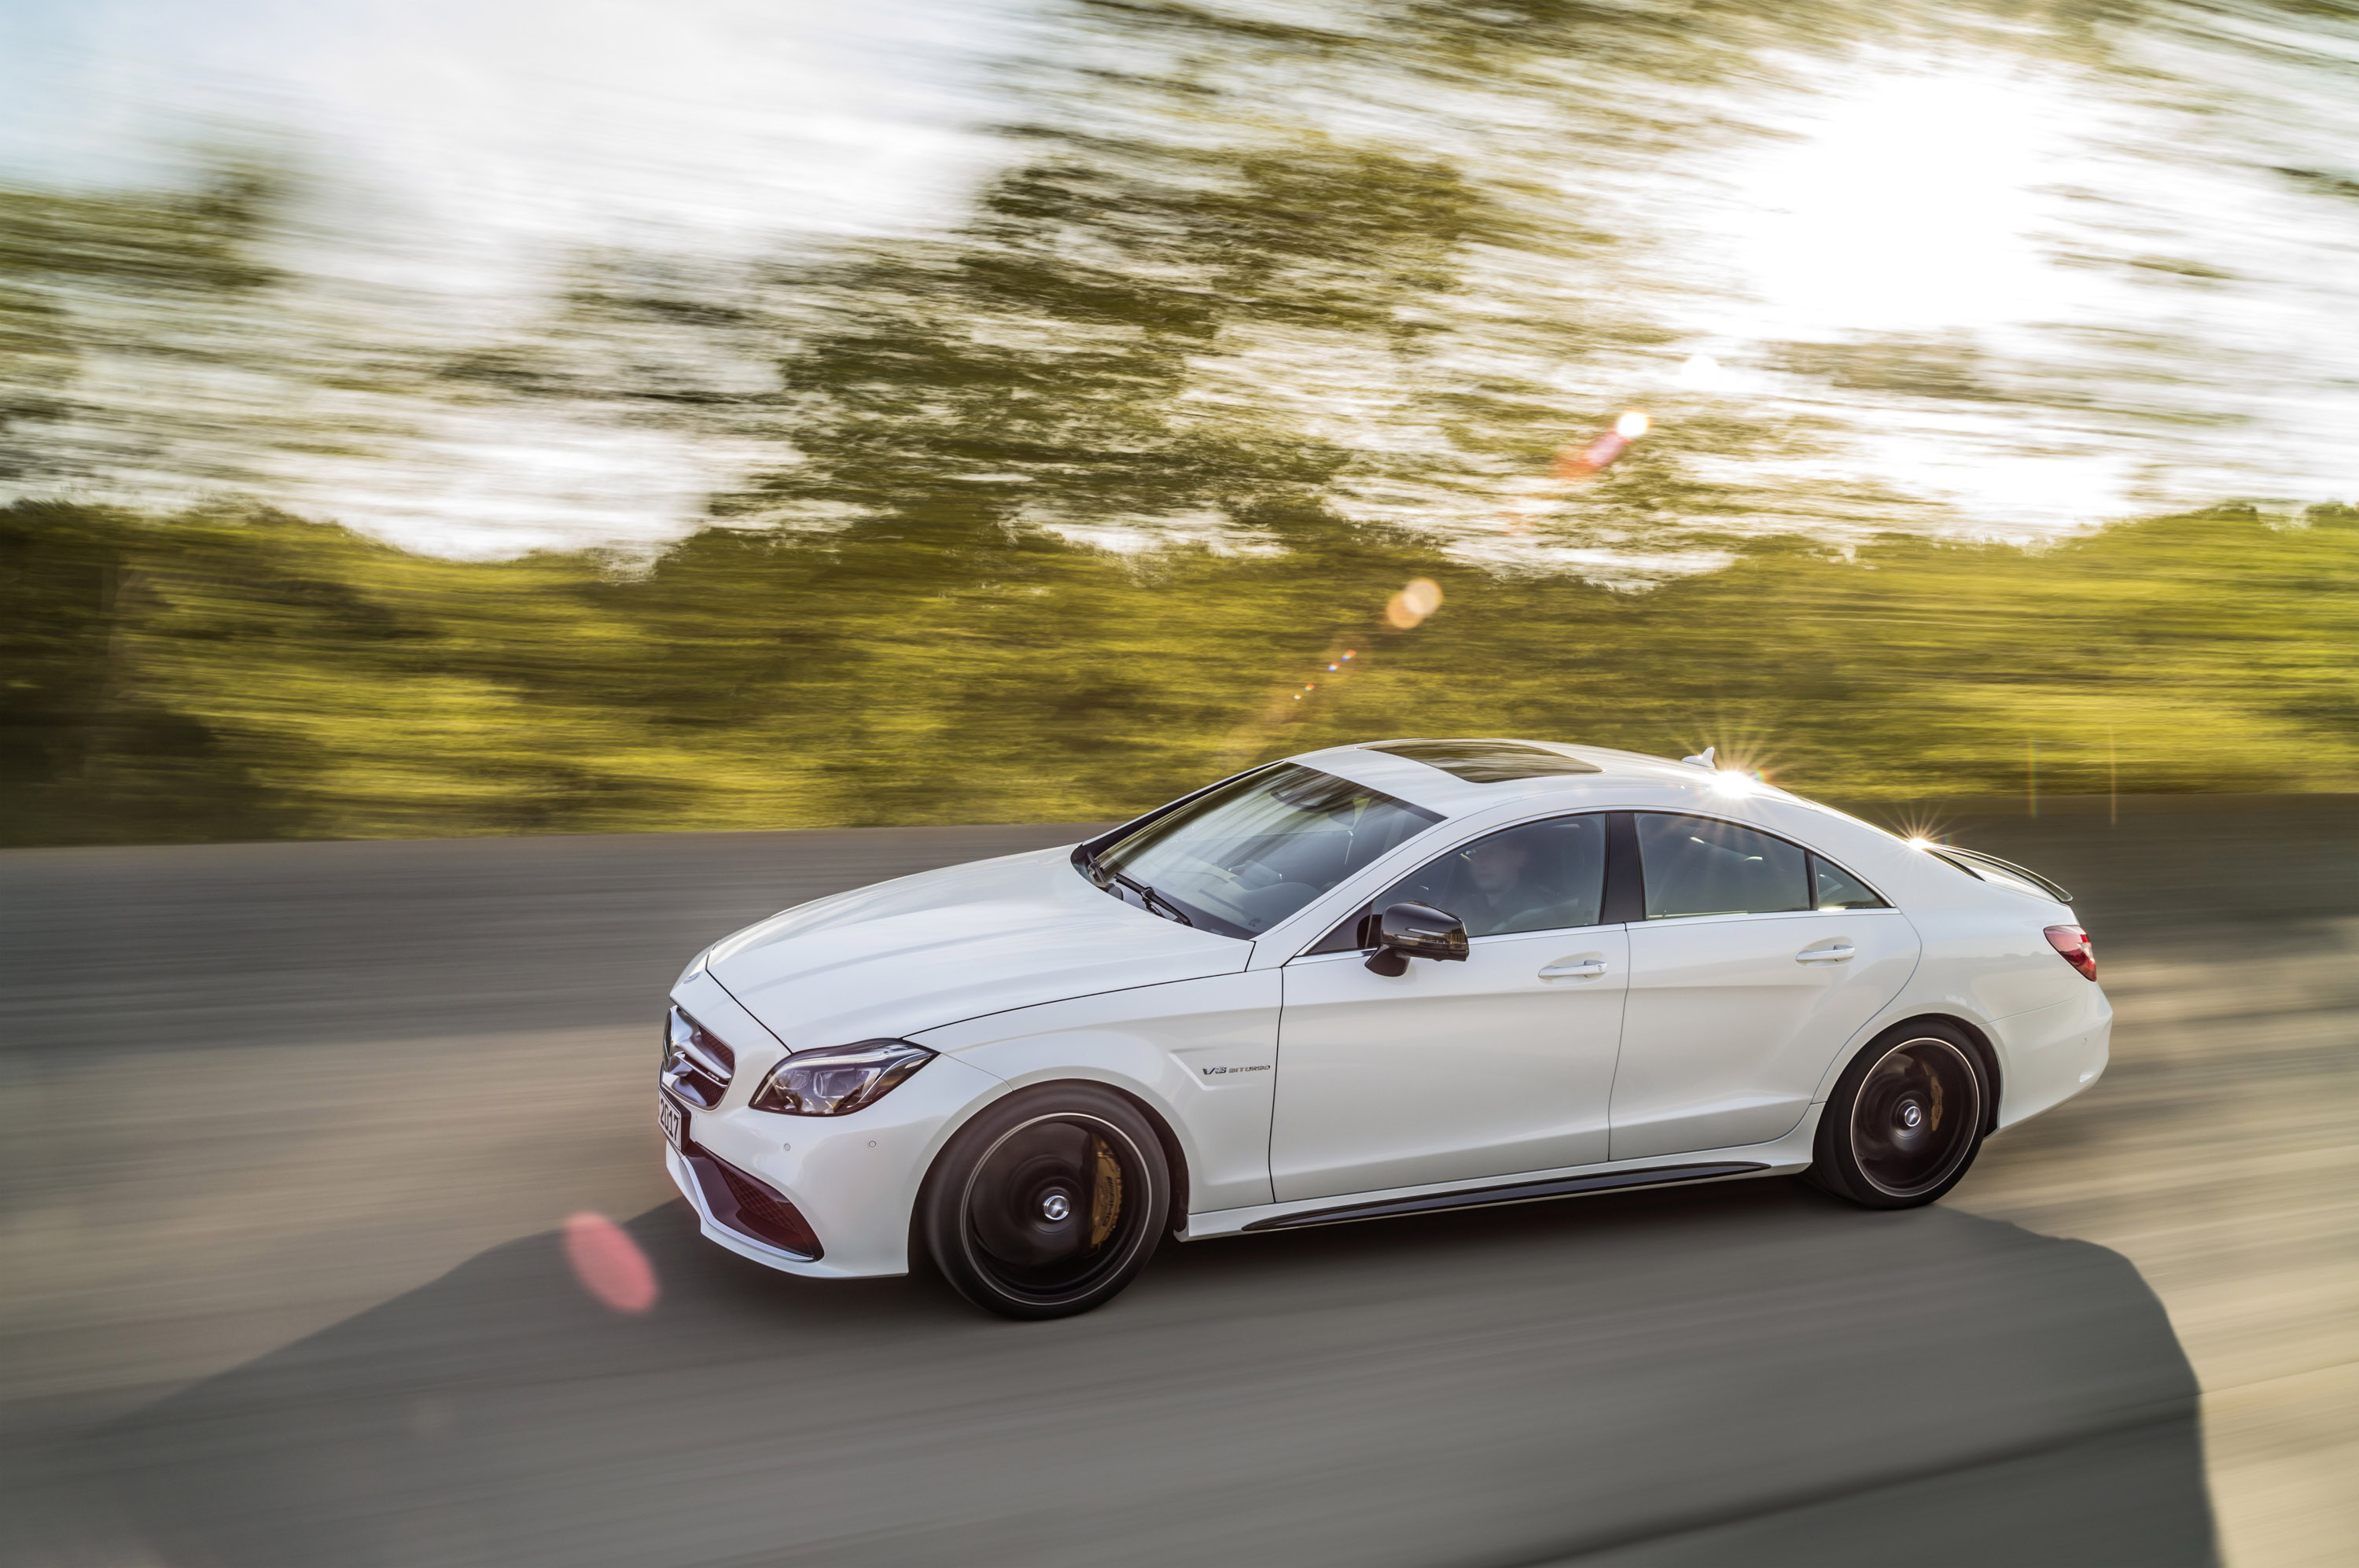 2015 mercedes benz cls coupe and cls shooting brake pricing announced. Black Bedroom Furniture Sets. Home Design Ideas